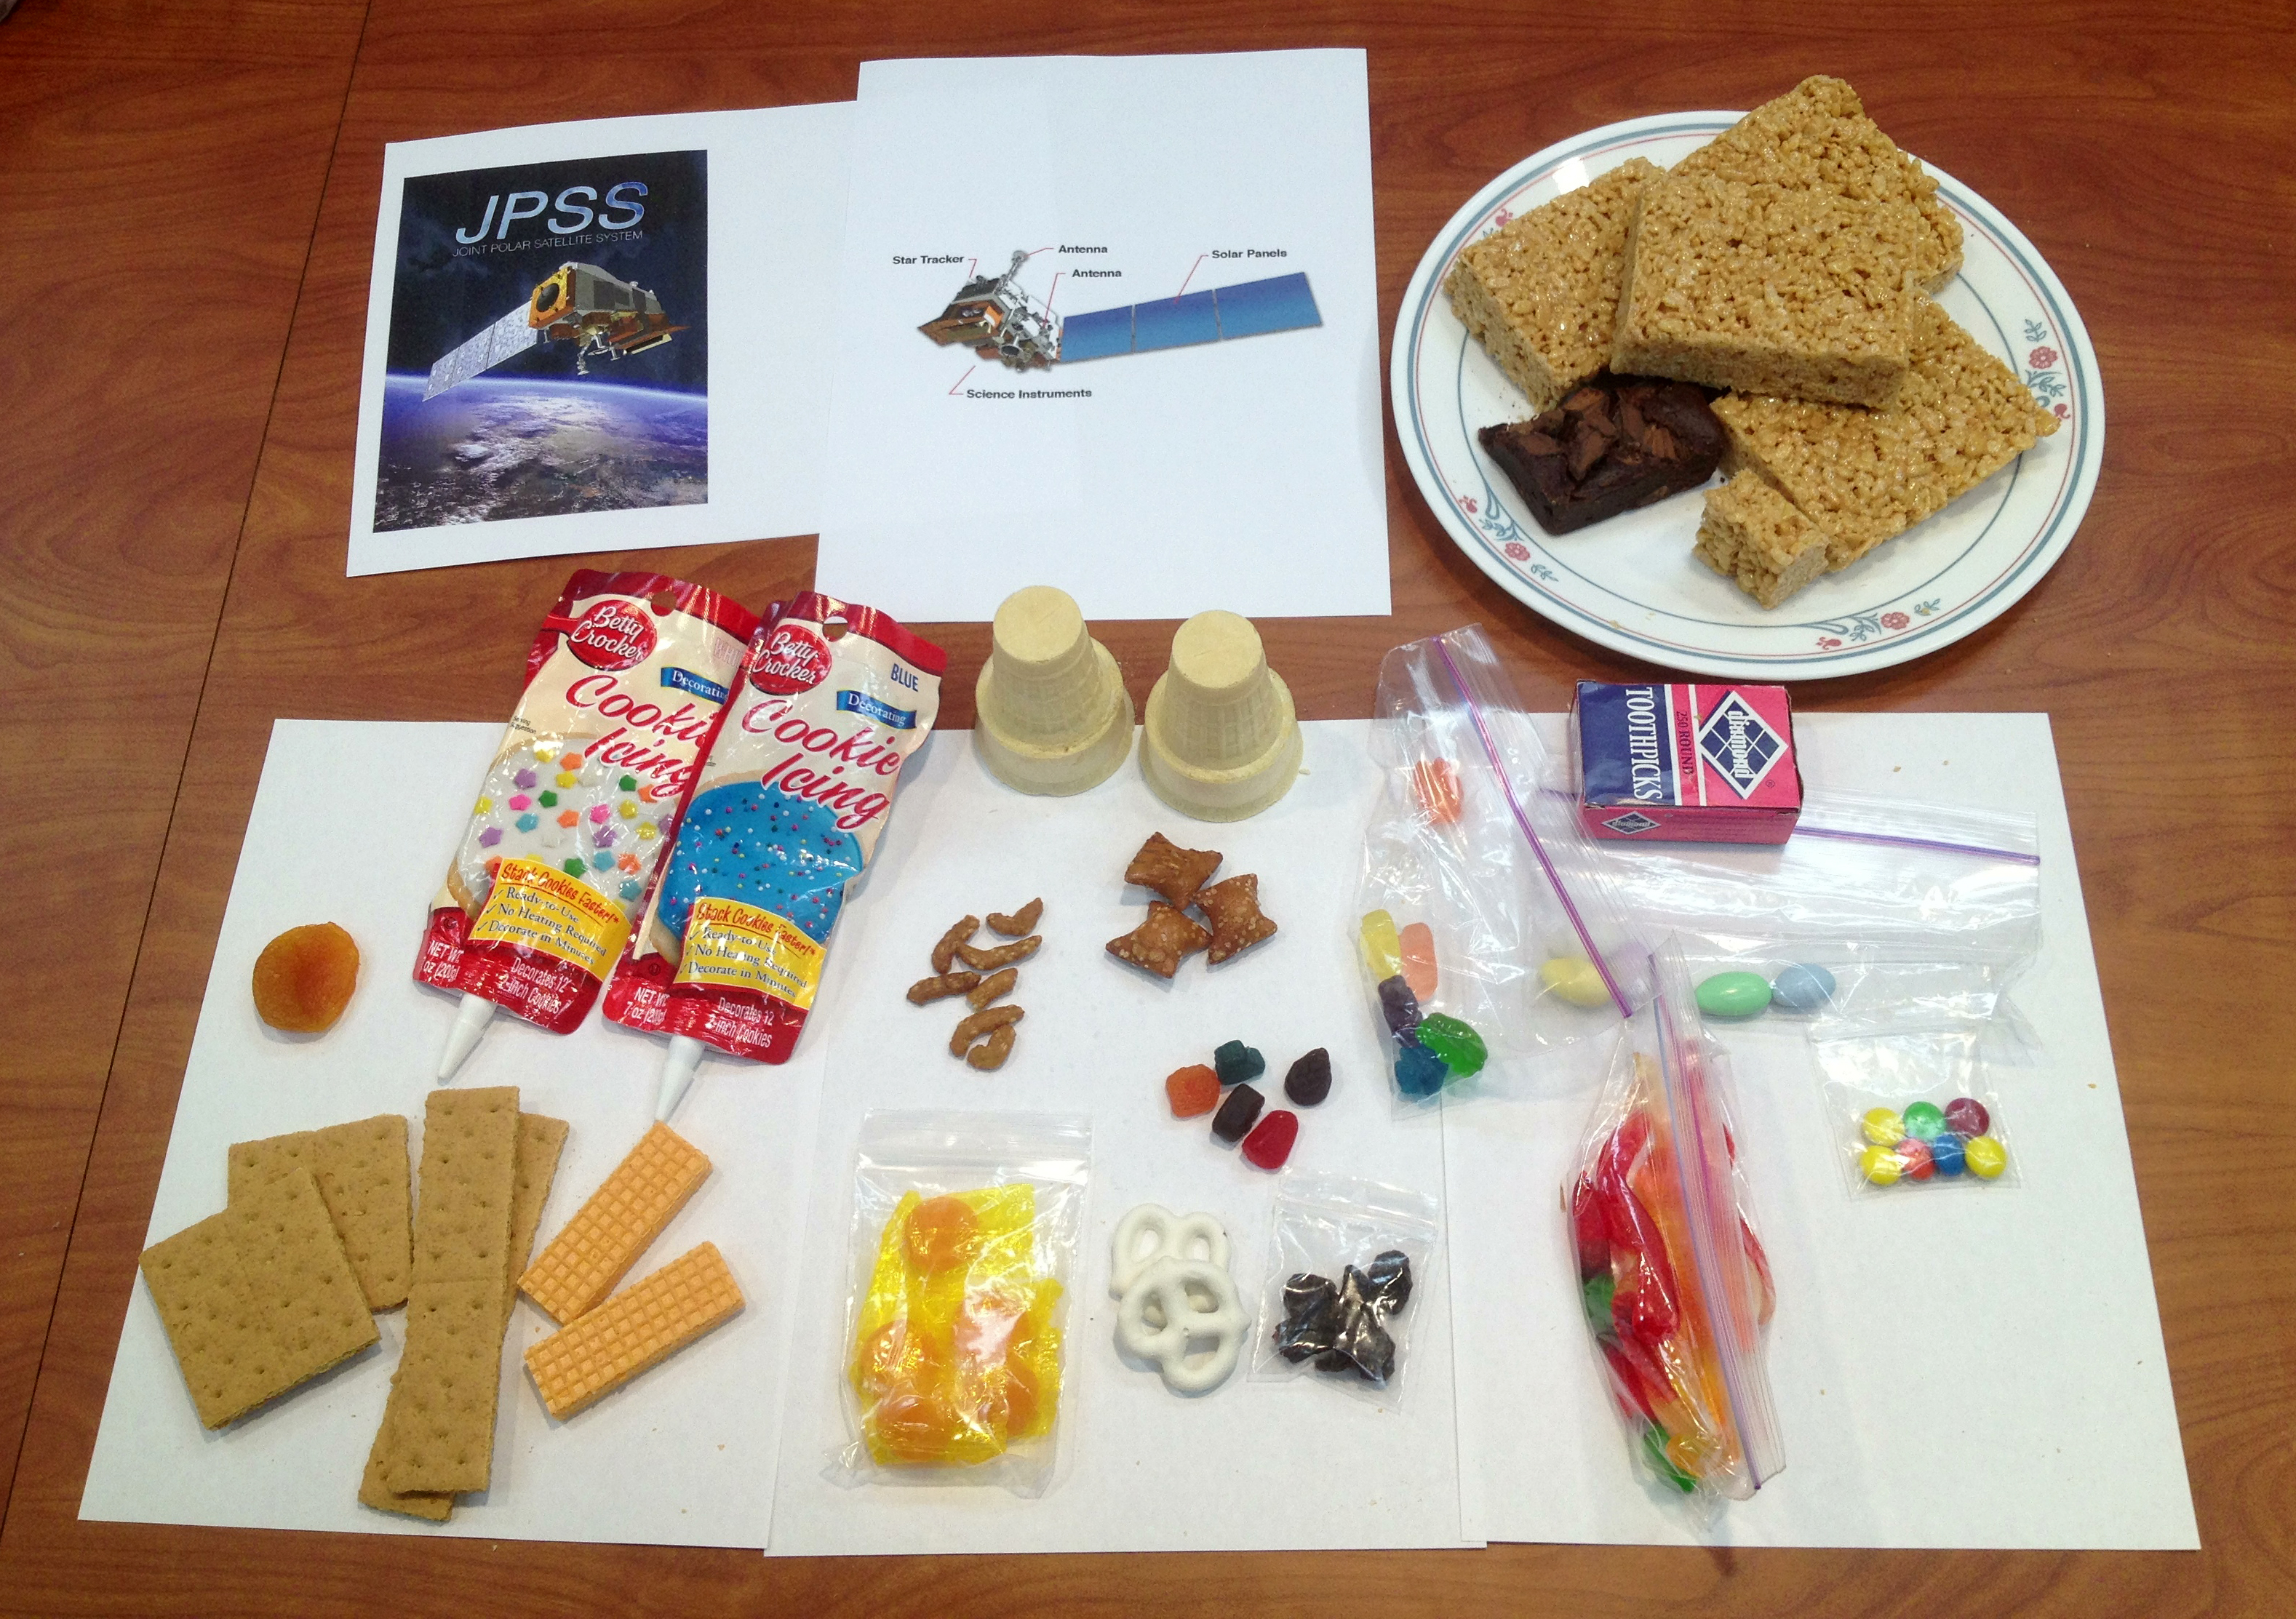 a picture of the described ingredients for an edible satellite model